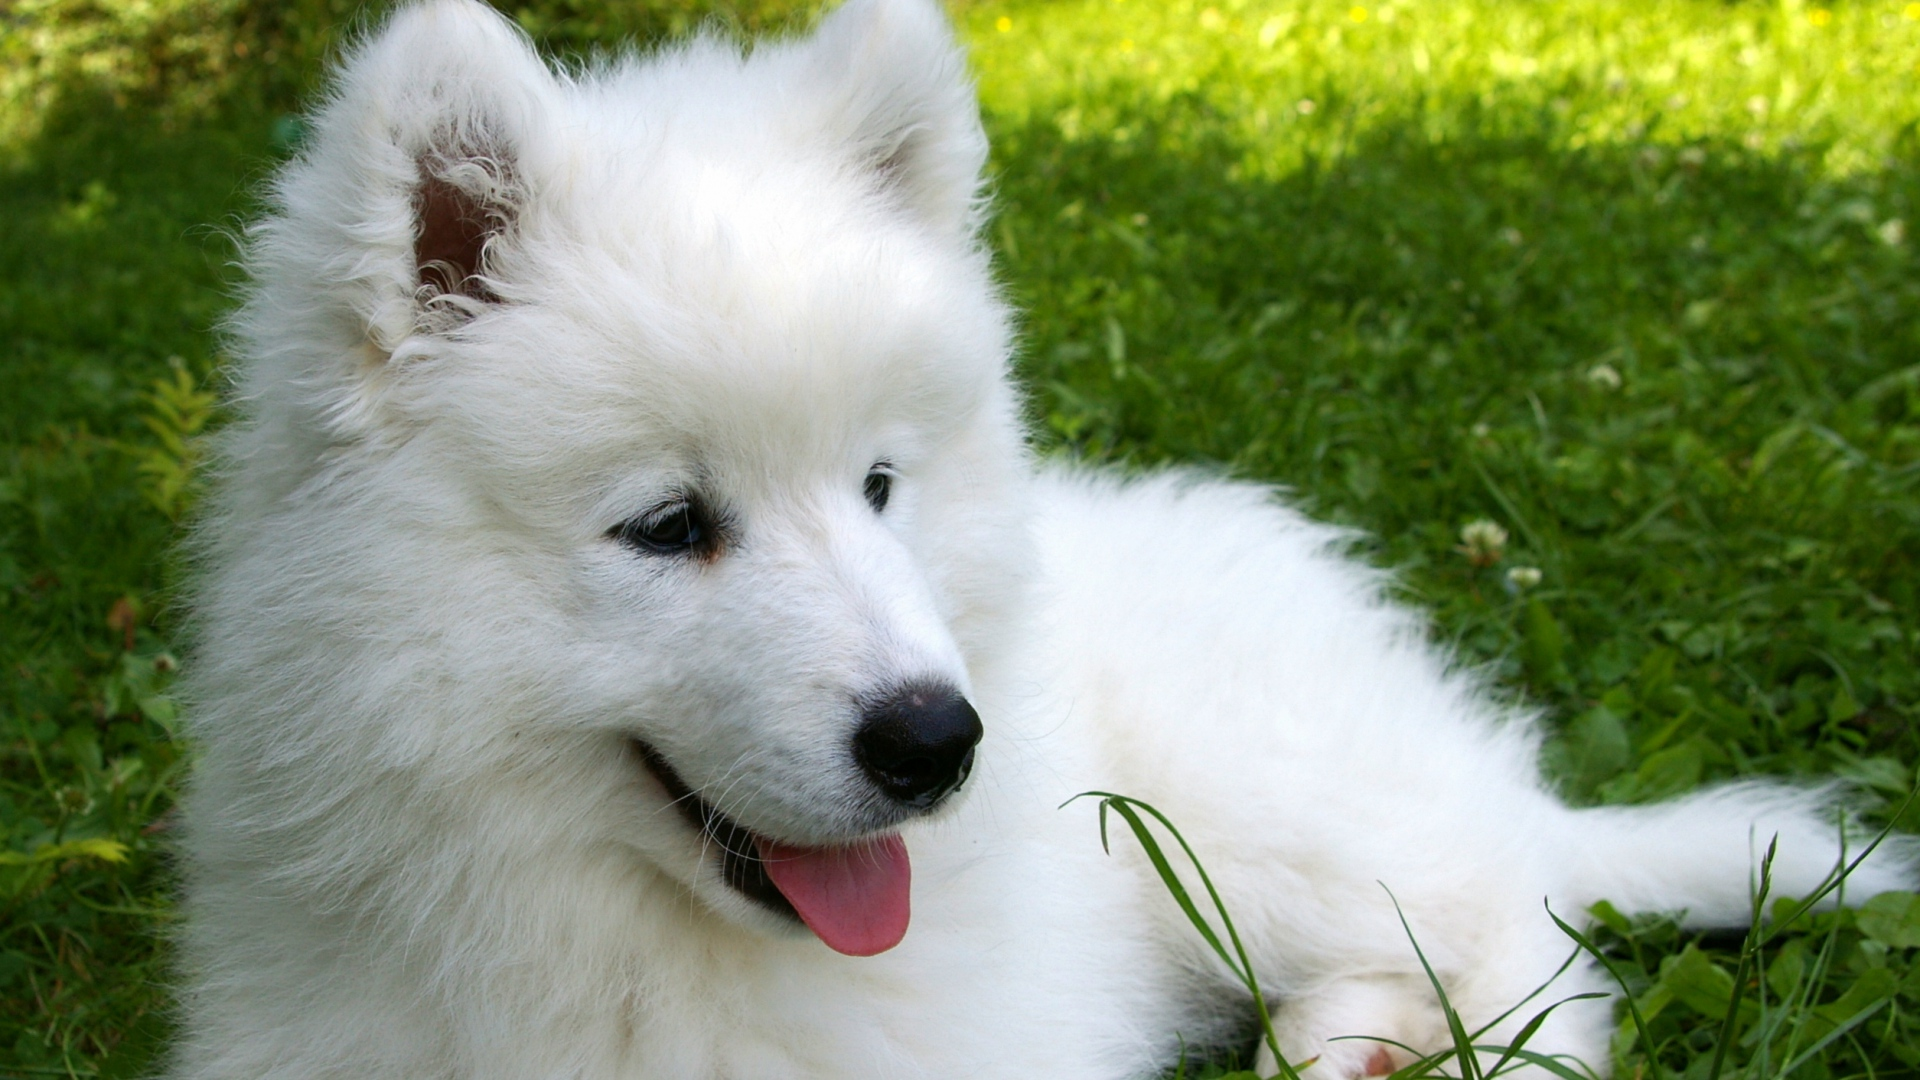 Samoyed Wallpapers and Background Images   stmednet 1920x1080